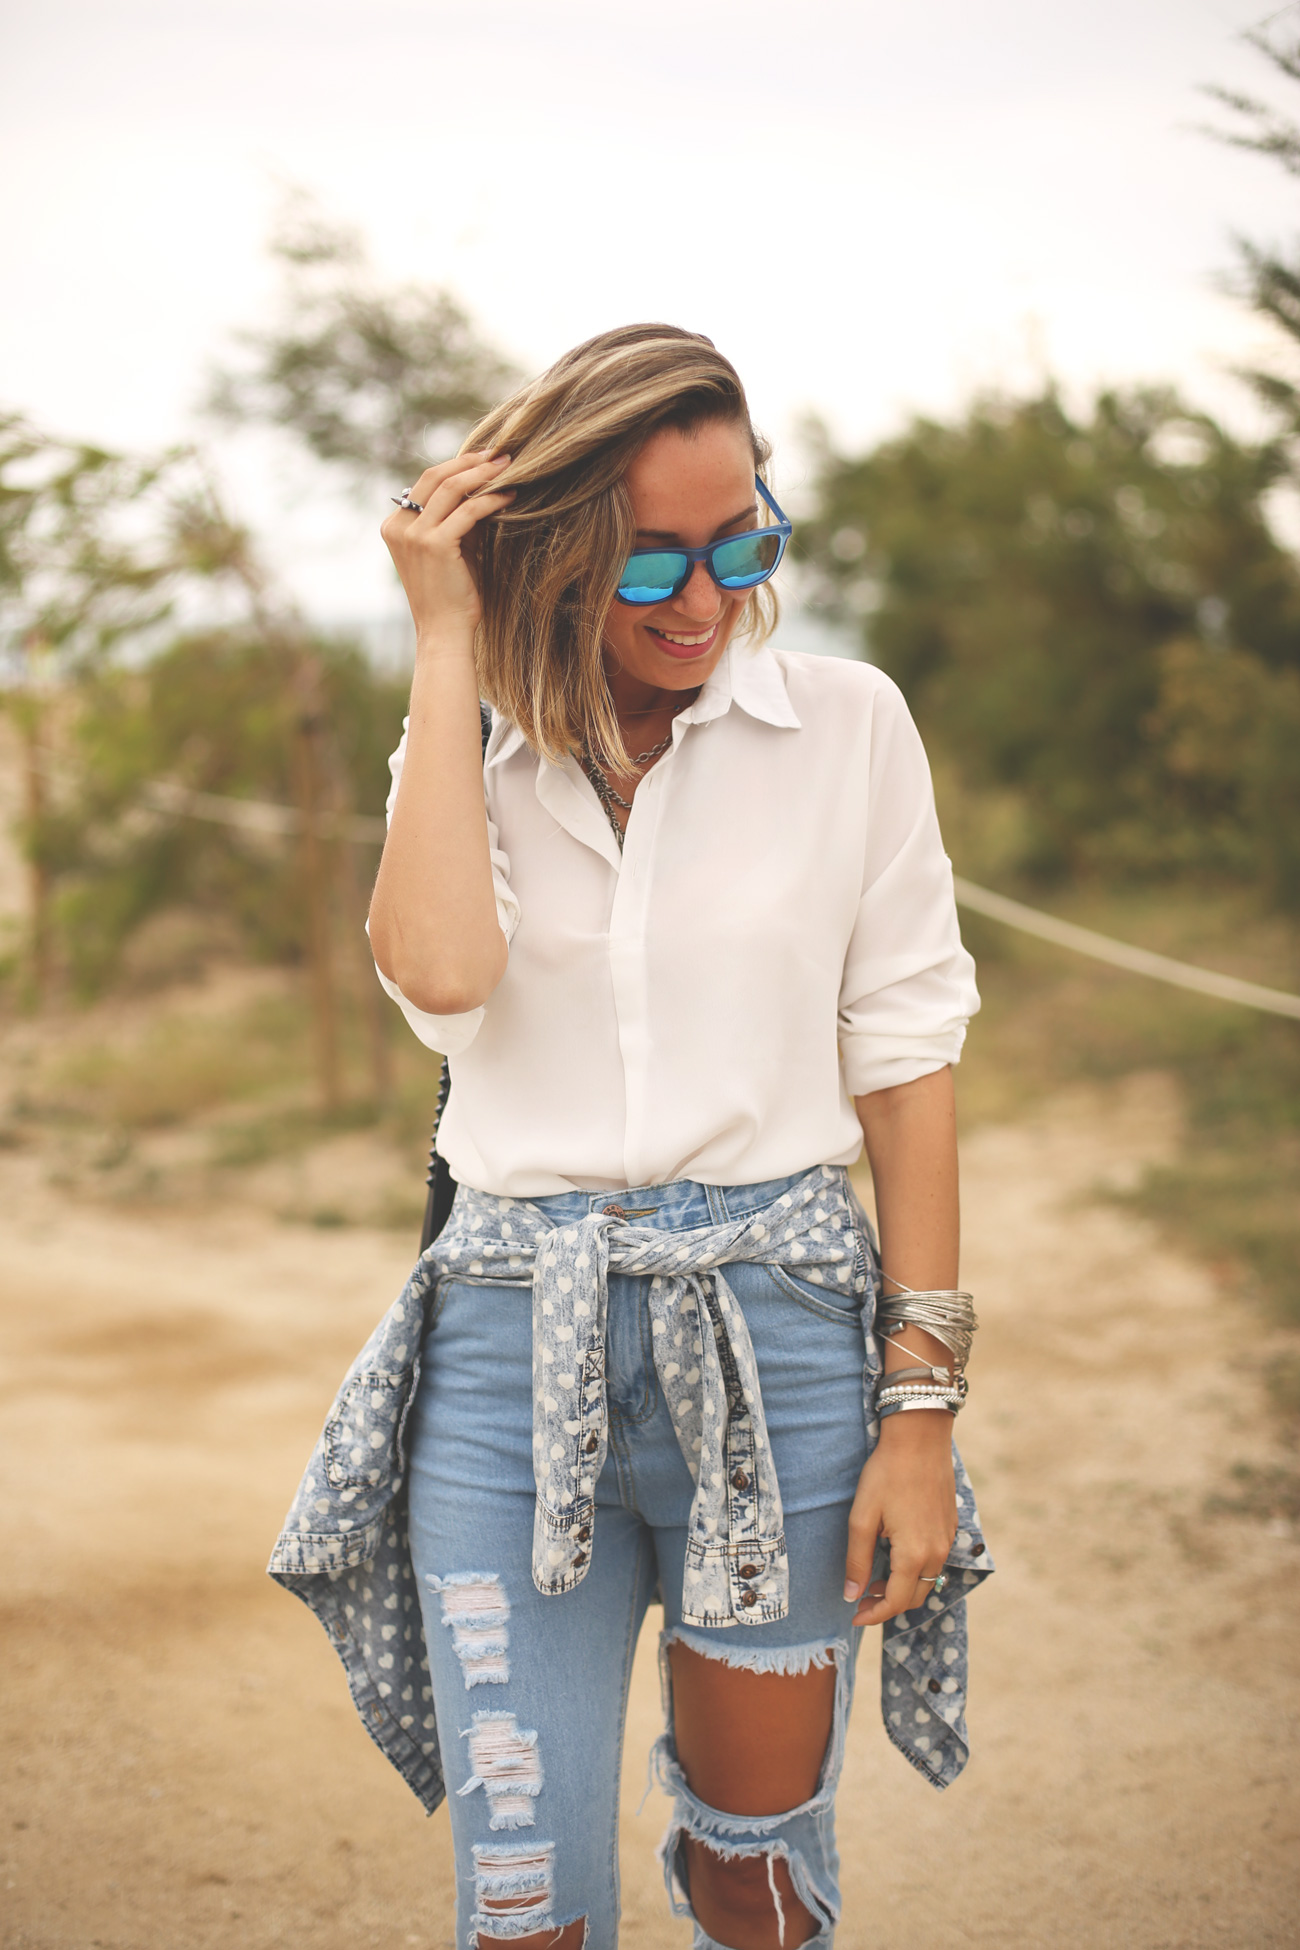 Mum Jeans, ripped jeans, white shirt, silver jewelry, baby blue heels, mirror sunglasses, blackguard 64